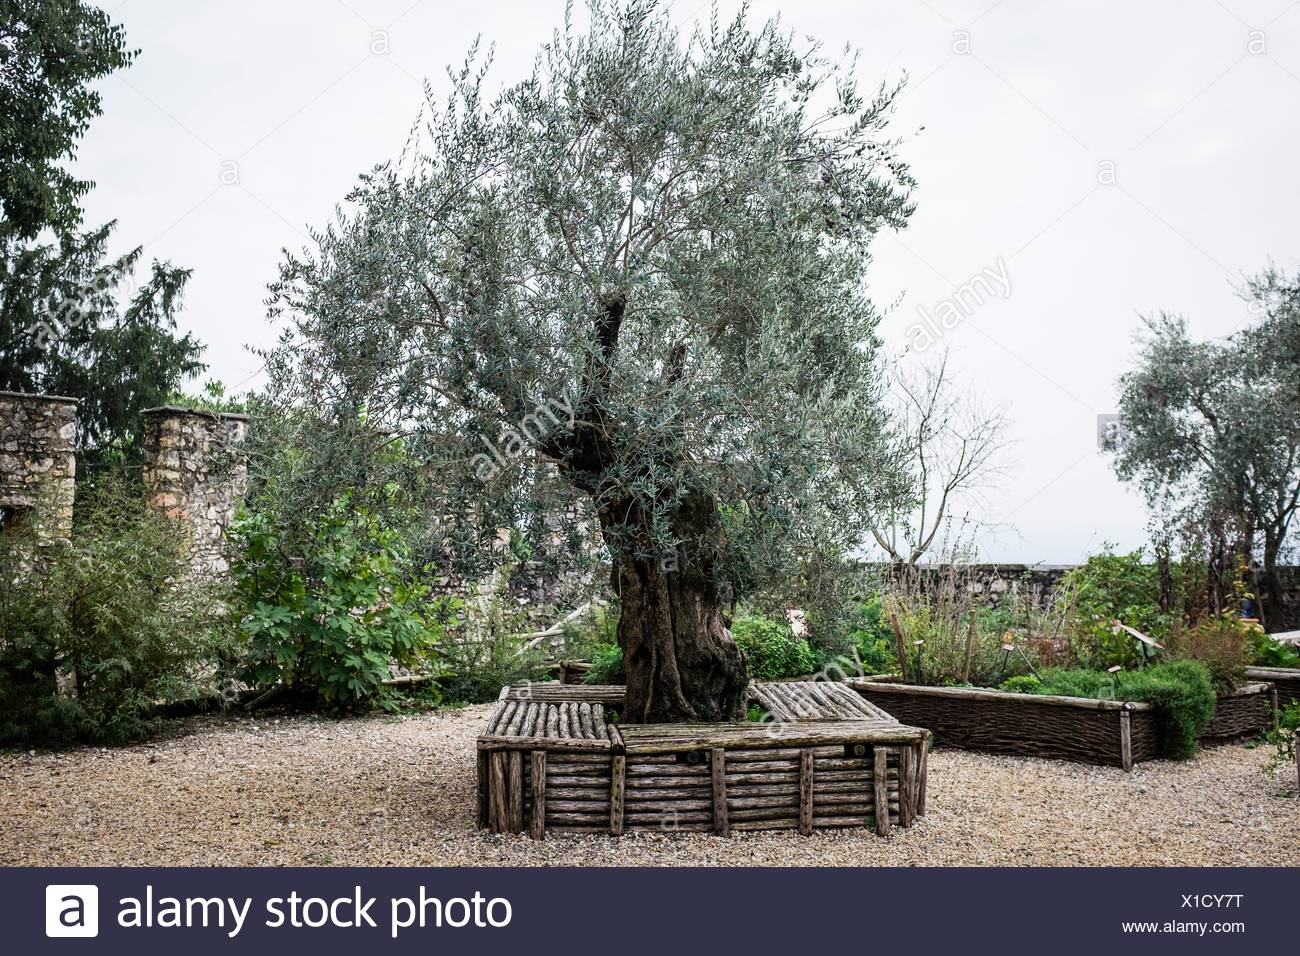 Olive Tree In The Garden Of A Medieval Castle, Angera, Italy   Stock Image